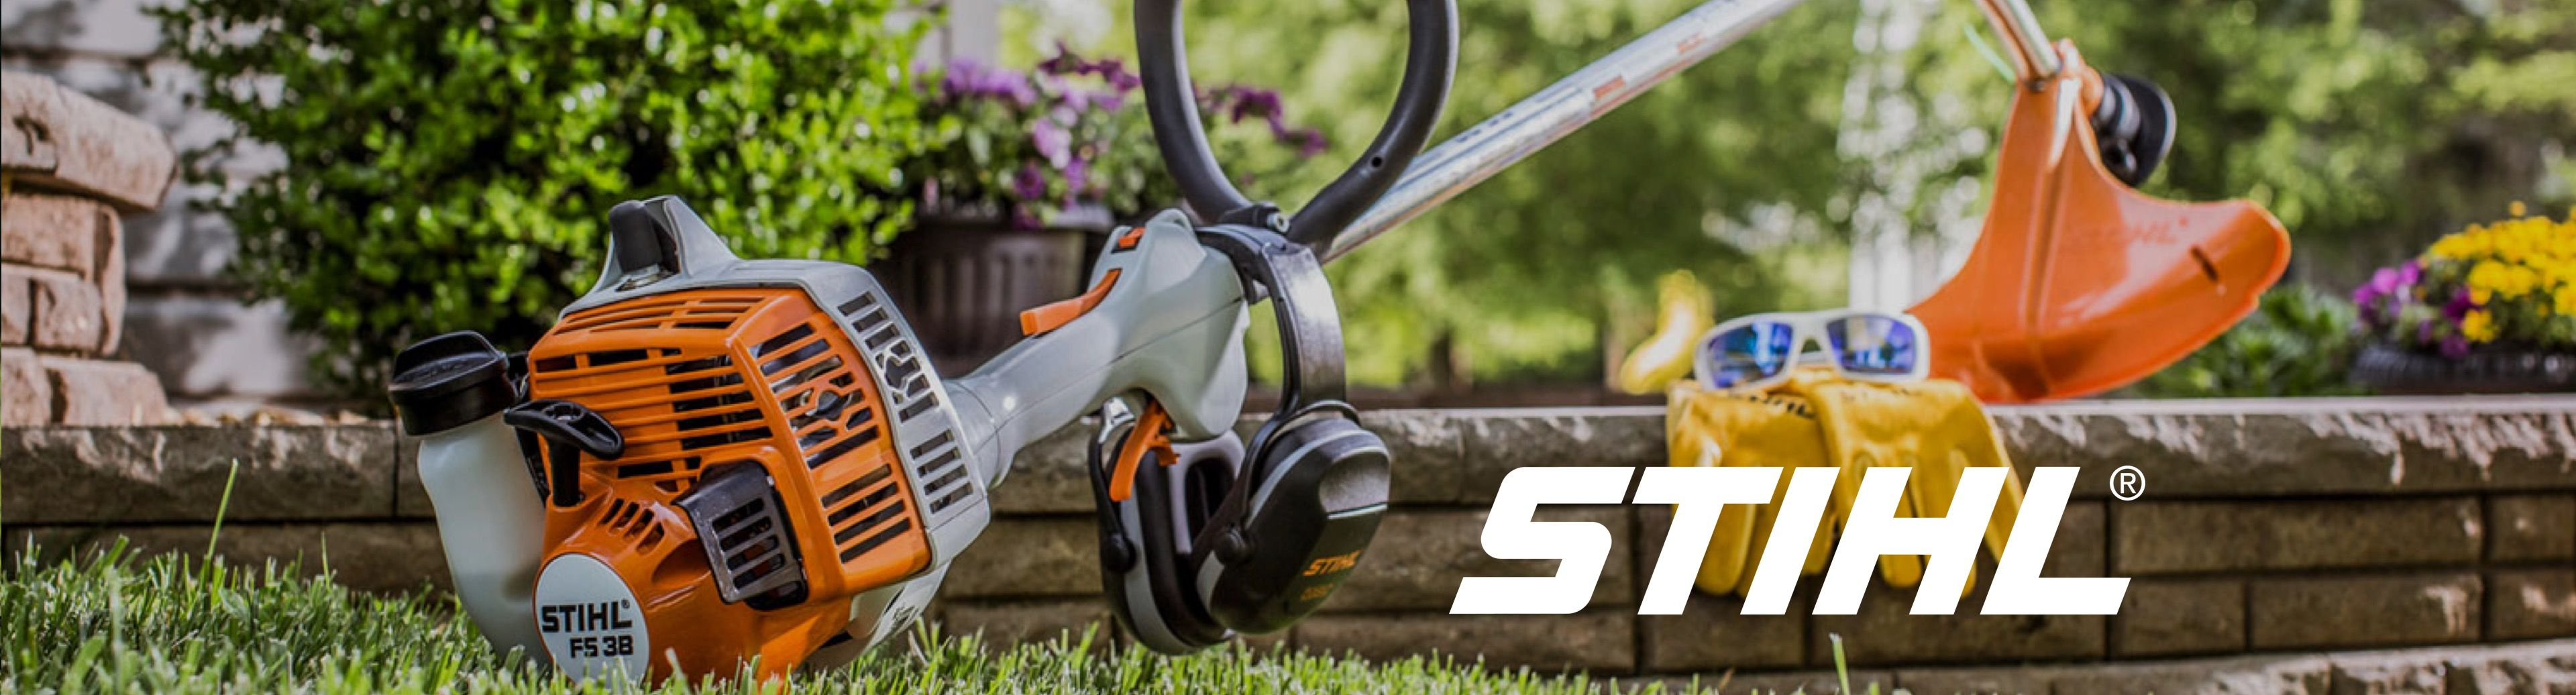 More about Stihl power equipment at Lumber Mart